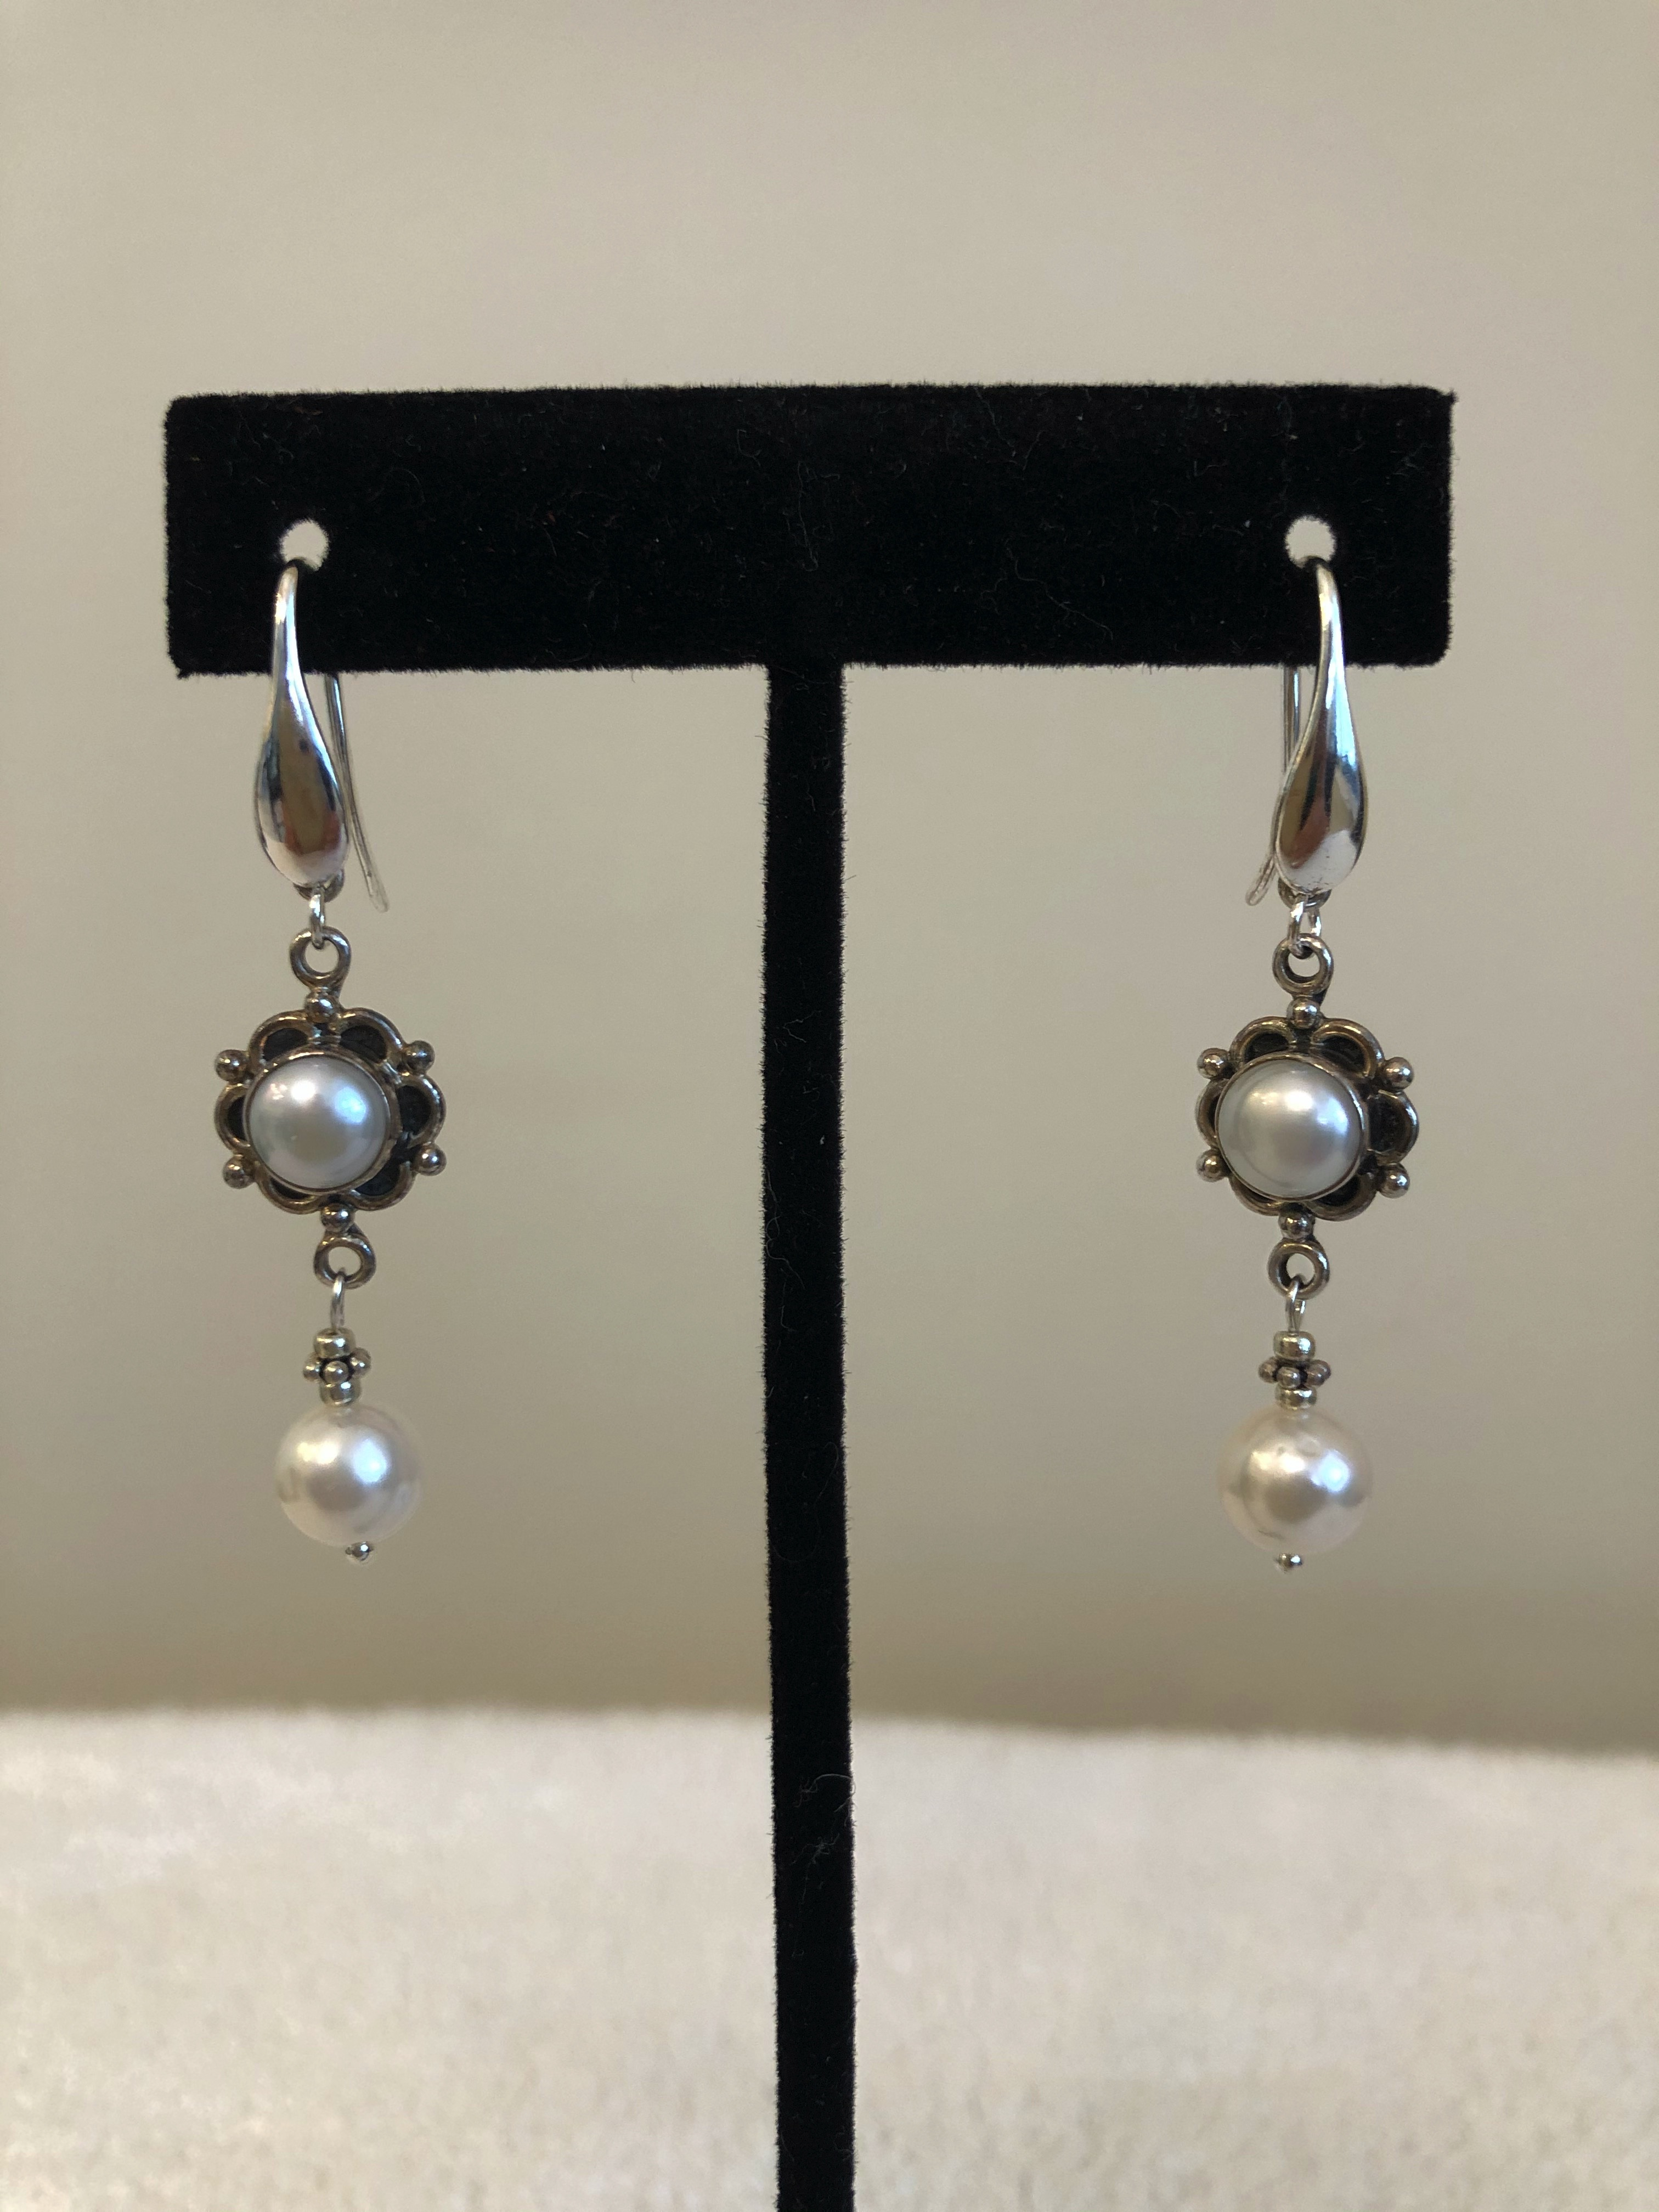 Sterling Silver Earrings, w/Freshwater Cultured Baroque & 8.5mm Pearls